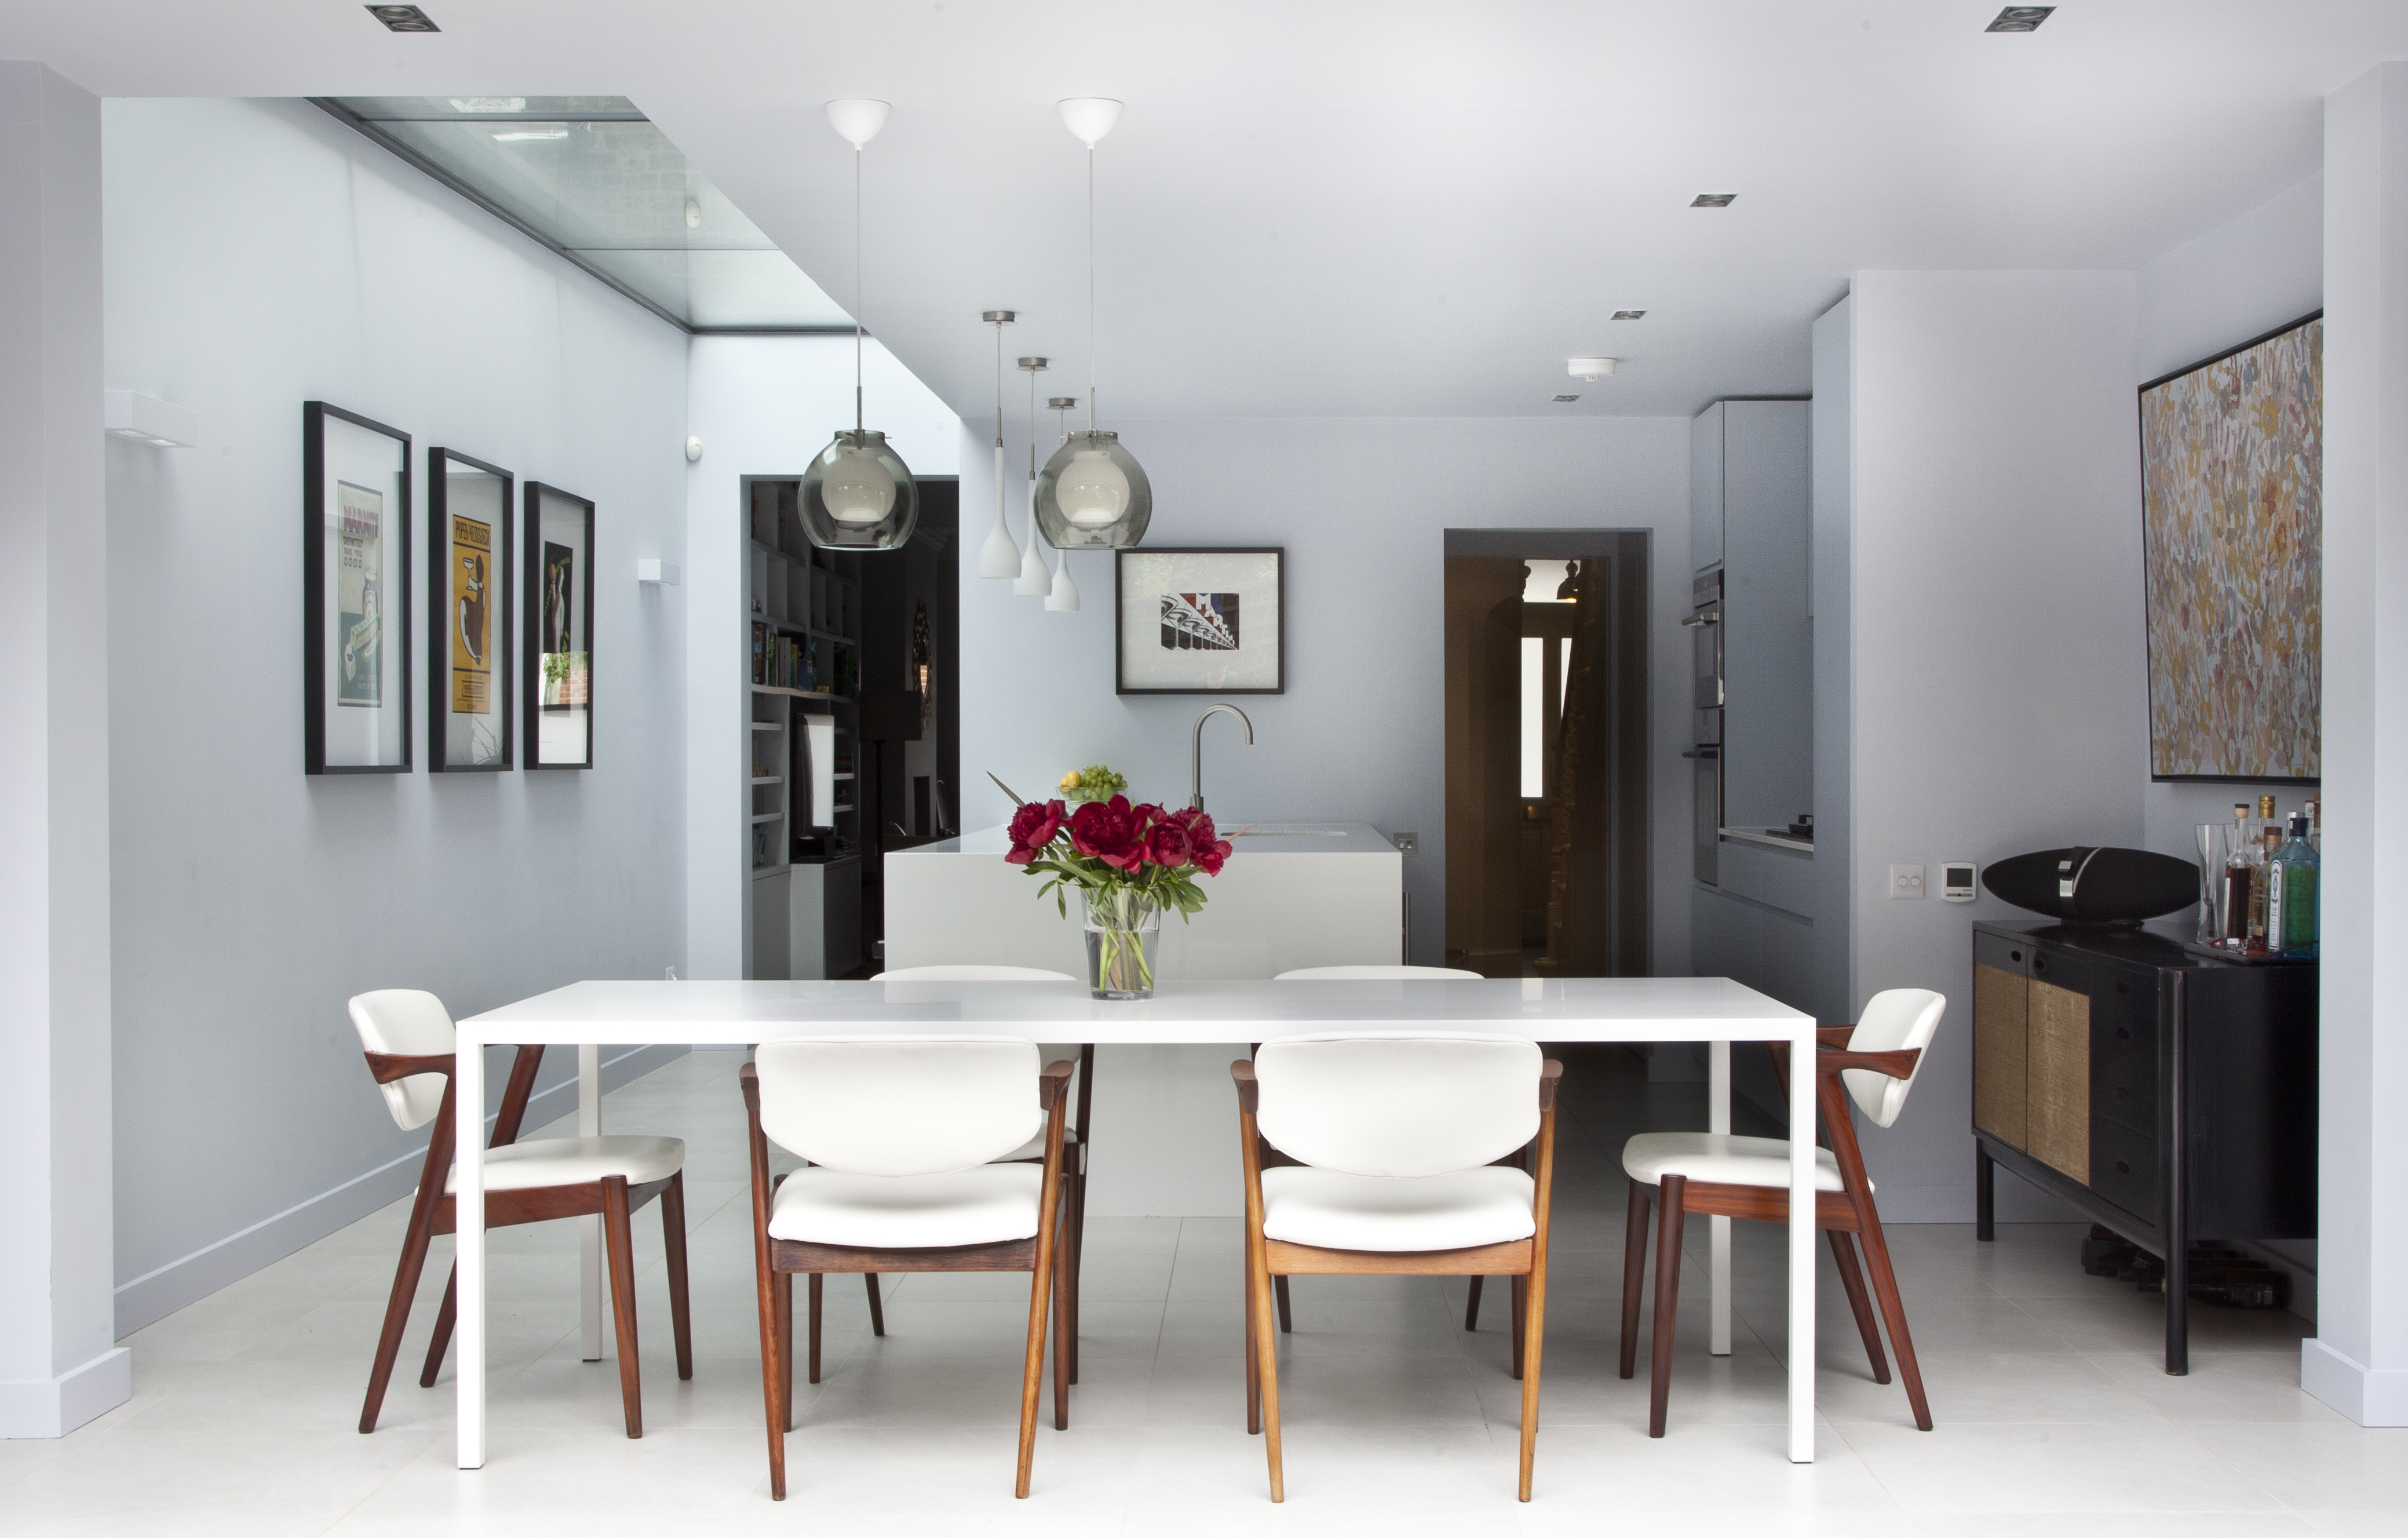 Bright dining area with white table and chairs